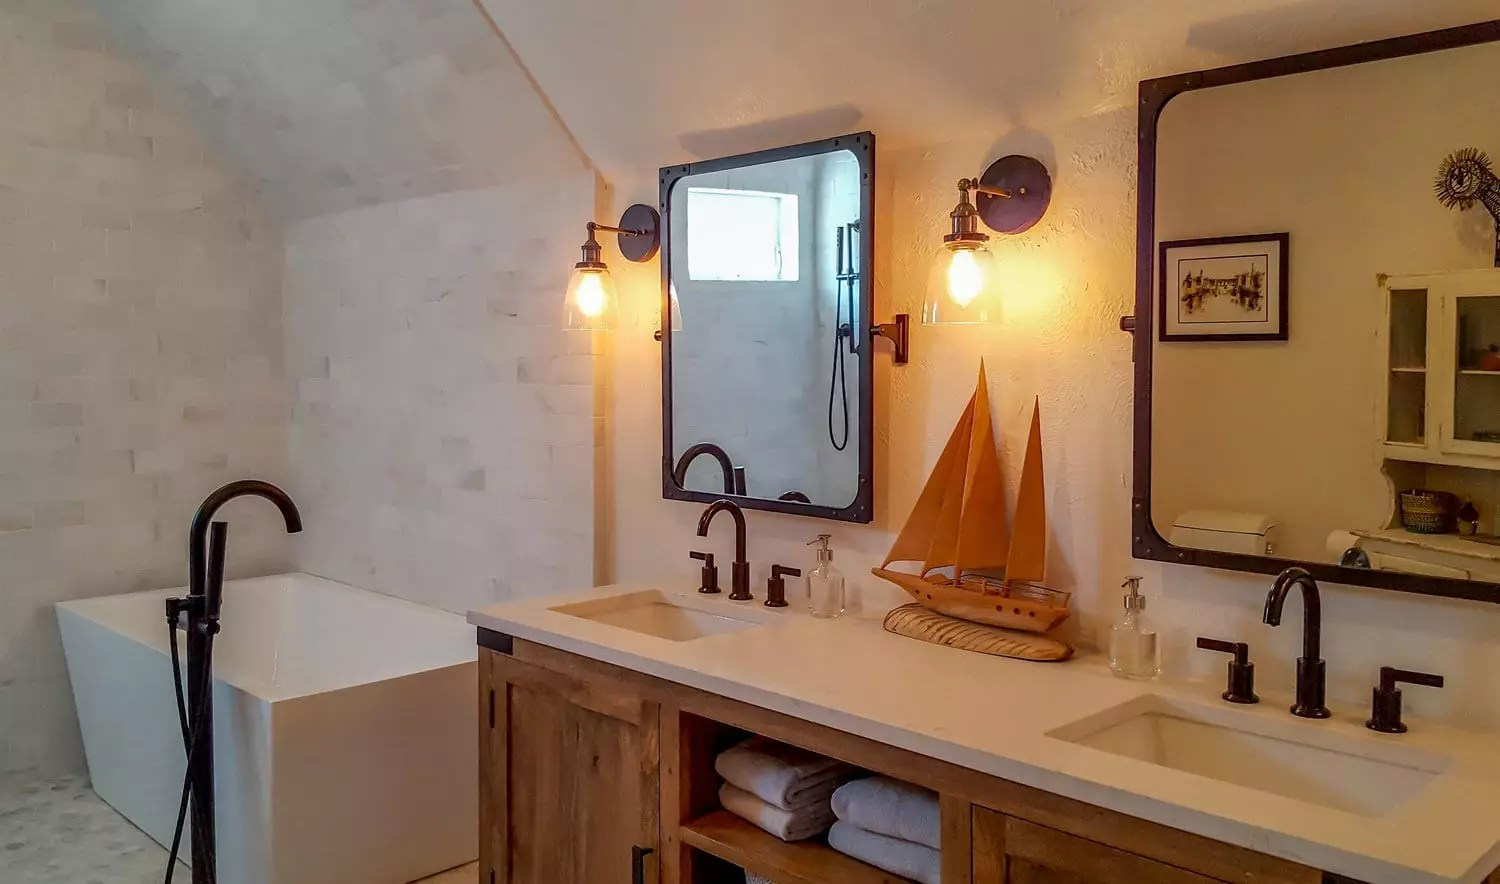 House Remodeling Contractors Near Me The Best Bathroom Remodeling Contractors In Denver Denver Architects